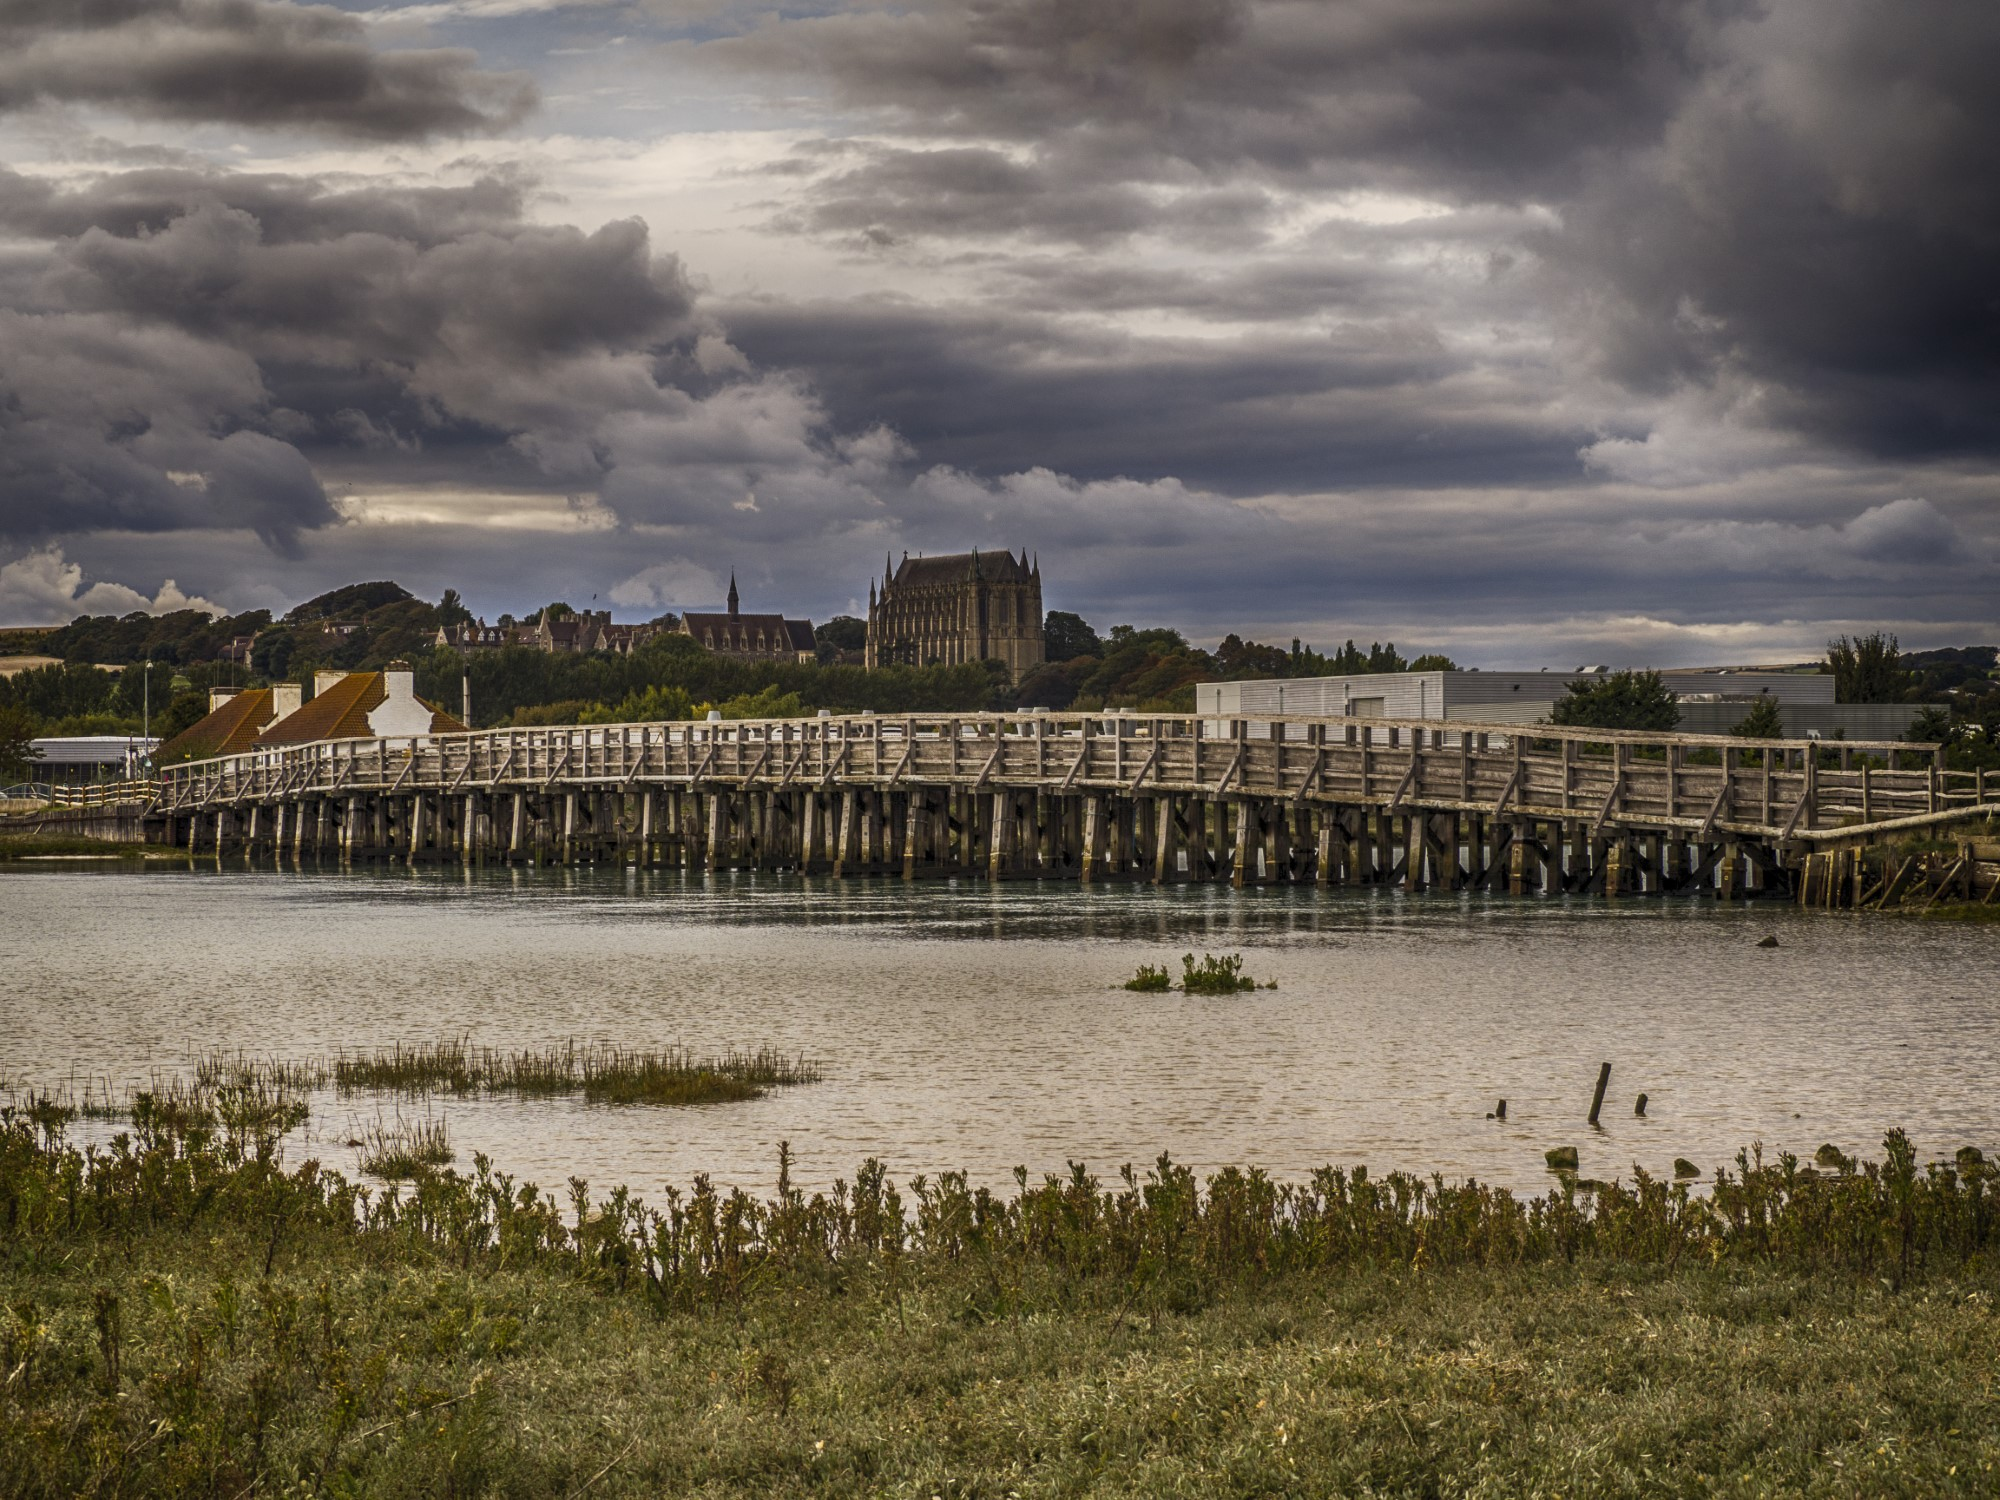 The Old Toll Bridge over the River Adur, Shoreham-by-Sea. Lancing College in the background.